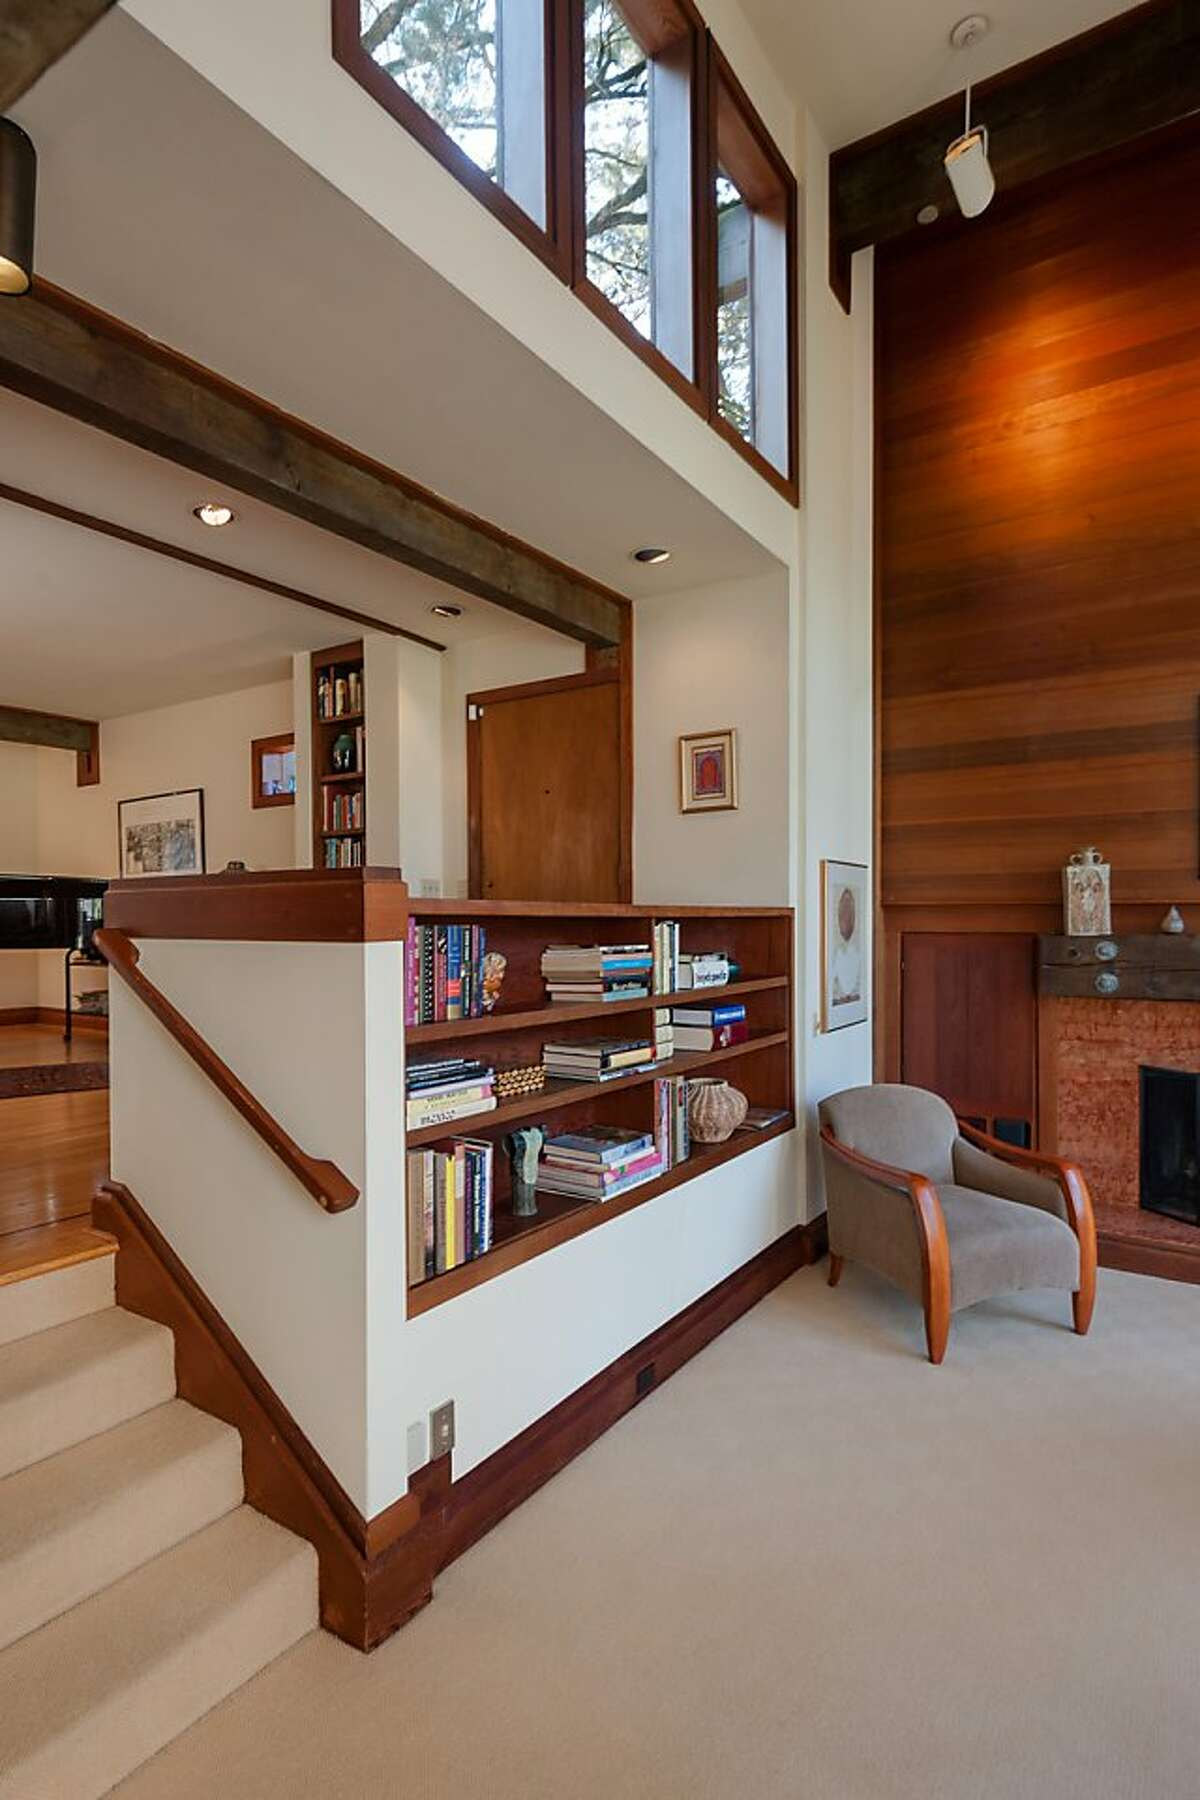 The four-bedroom home is technically two stories, but actually features eight living levels because of its innovative construction.